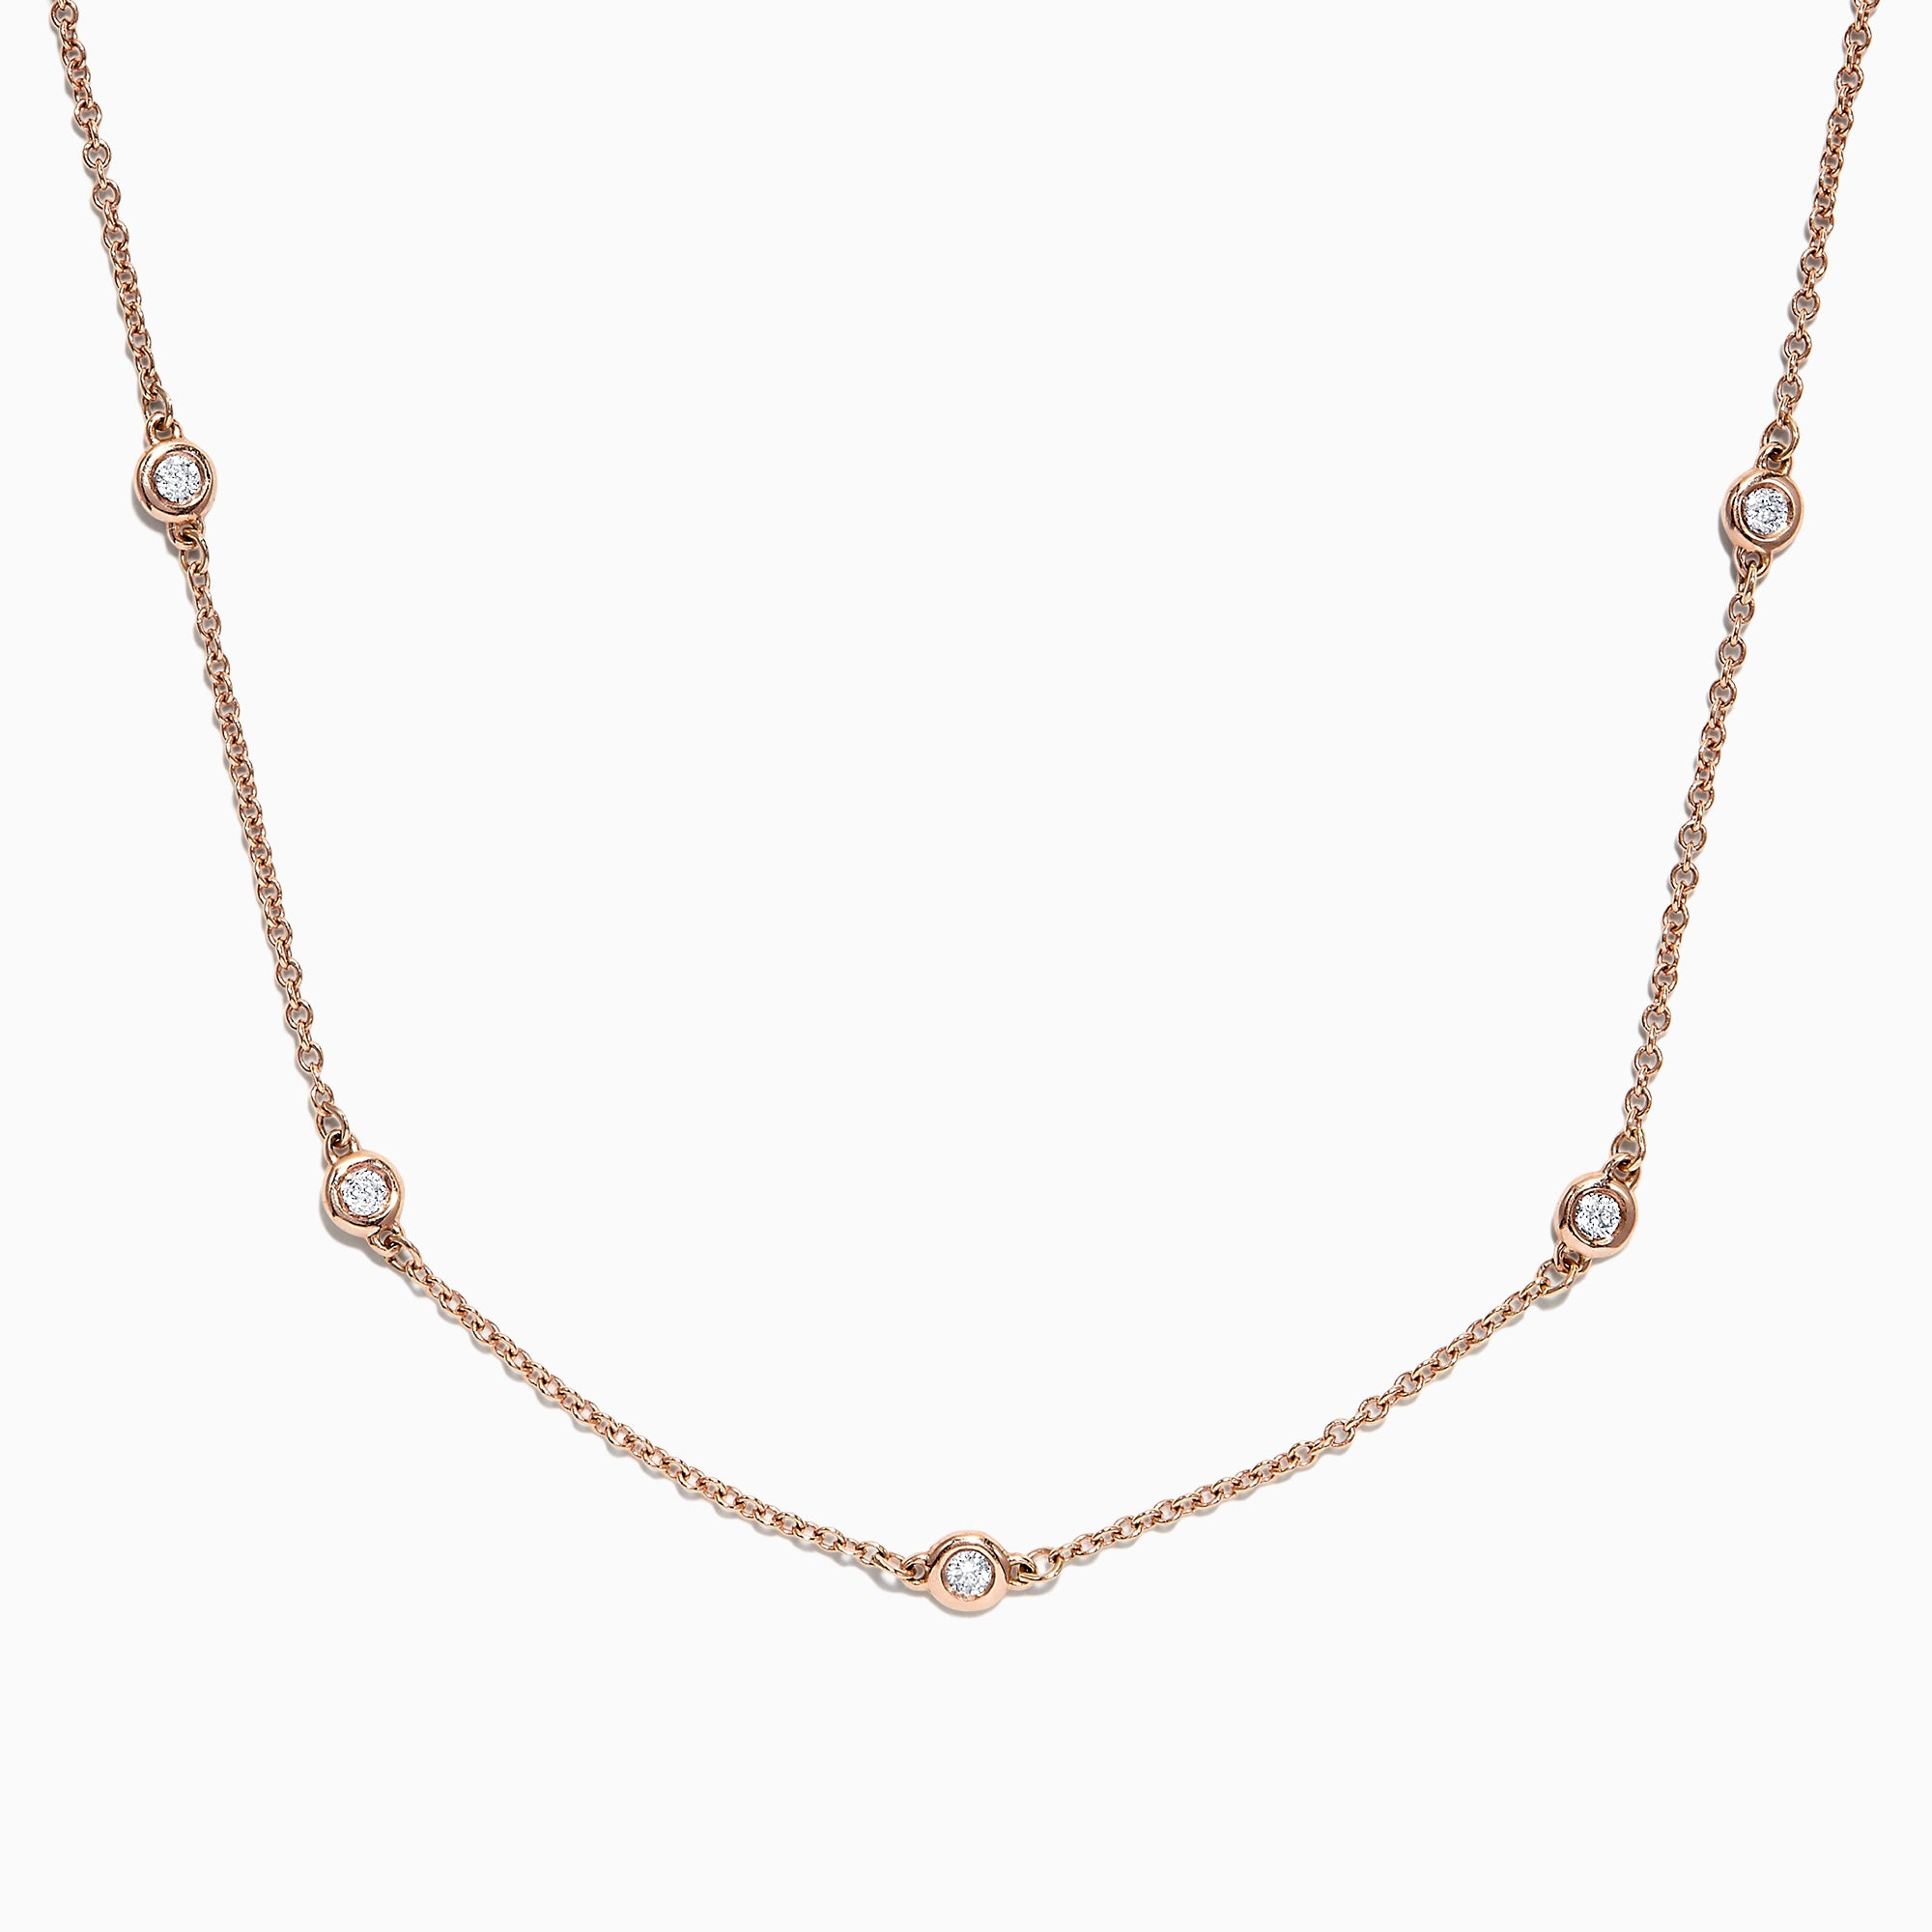 "Effy 14K Rose Gold 18"" Diamonds Station Necklace, 0.21 TCW"